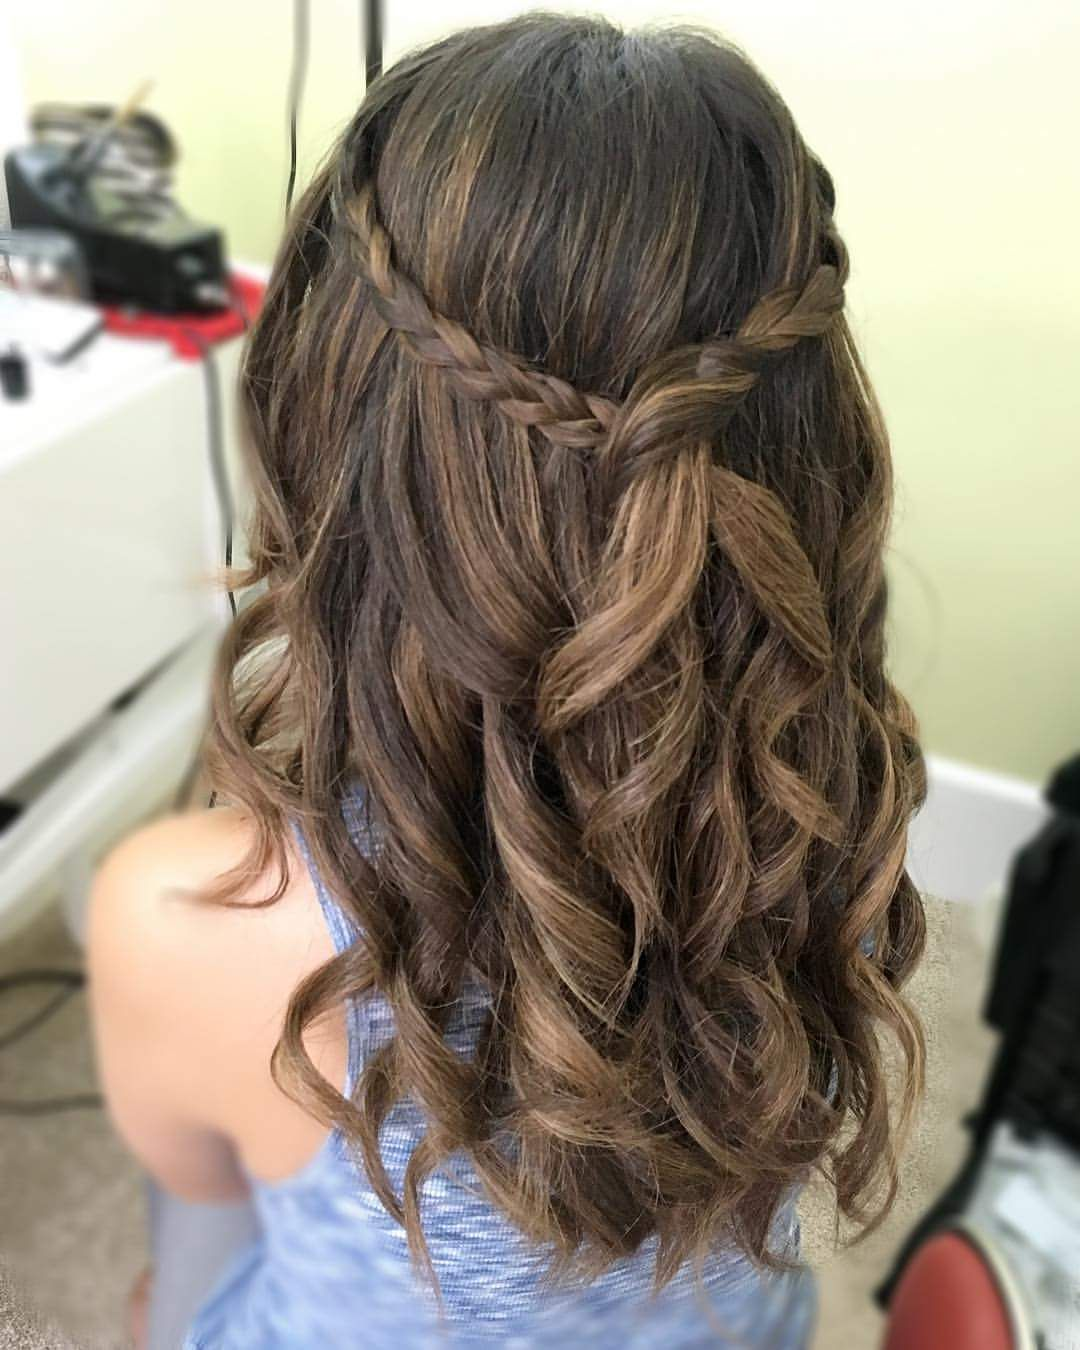 Awesome Graduation Party Hairstyle Graduation Party Hairstyles Graduation Hairstyles Hair Styles